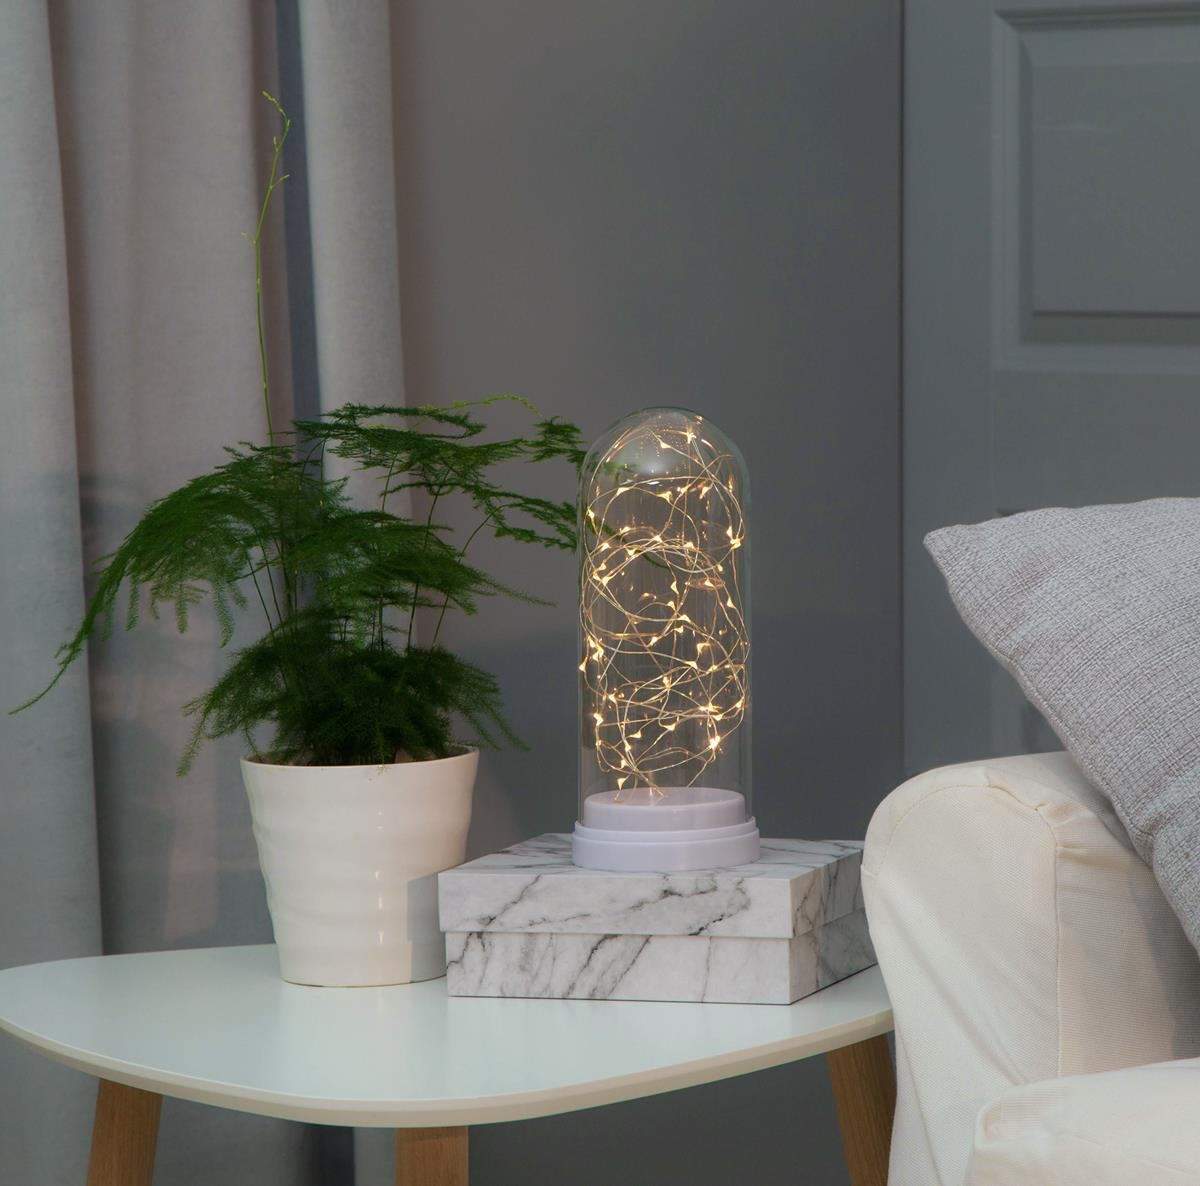 LED Lichterkette in Glaskuppel - 50 warmweisse LED - H: 25cm- D: 11cm - Batterie - Timer - weiss